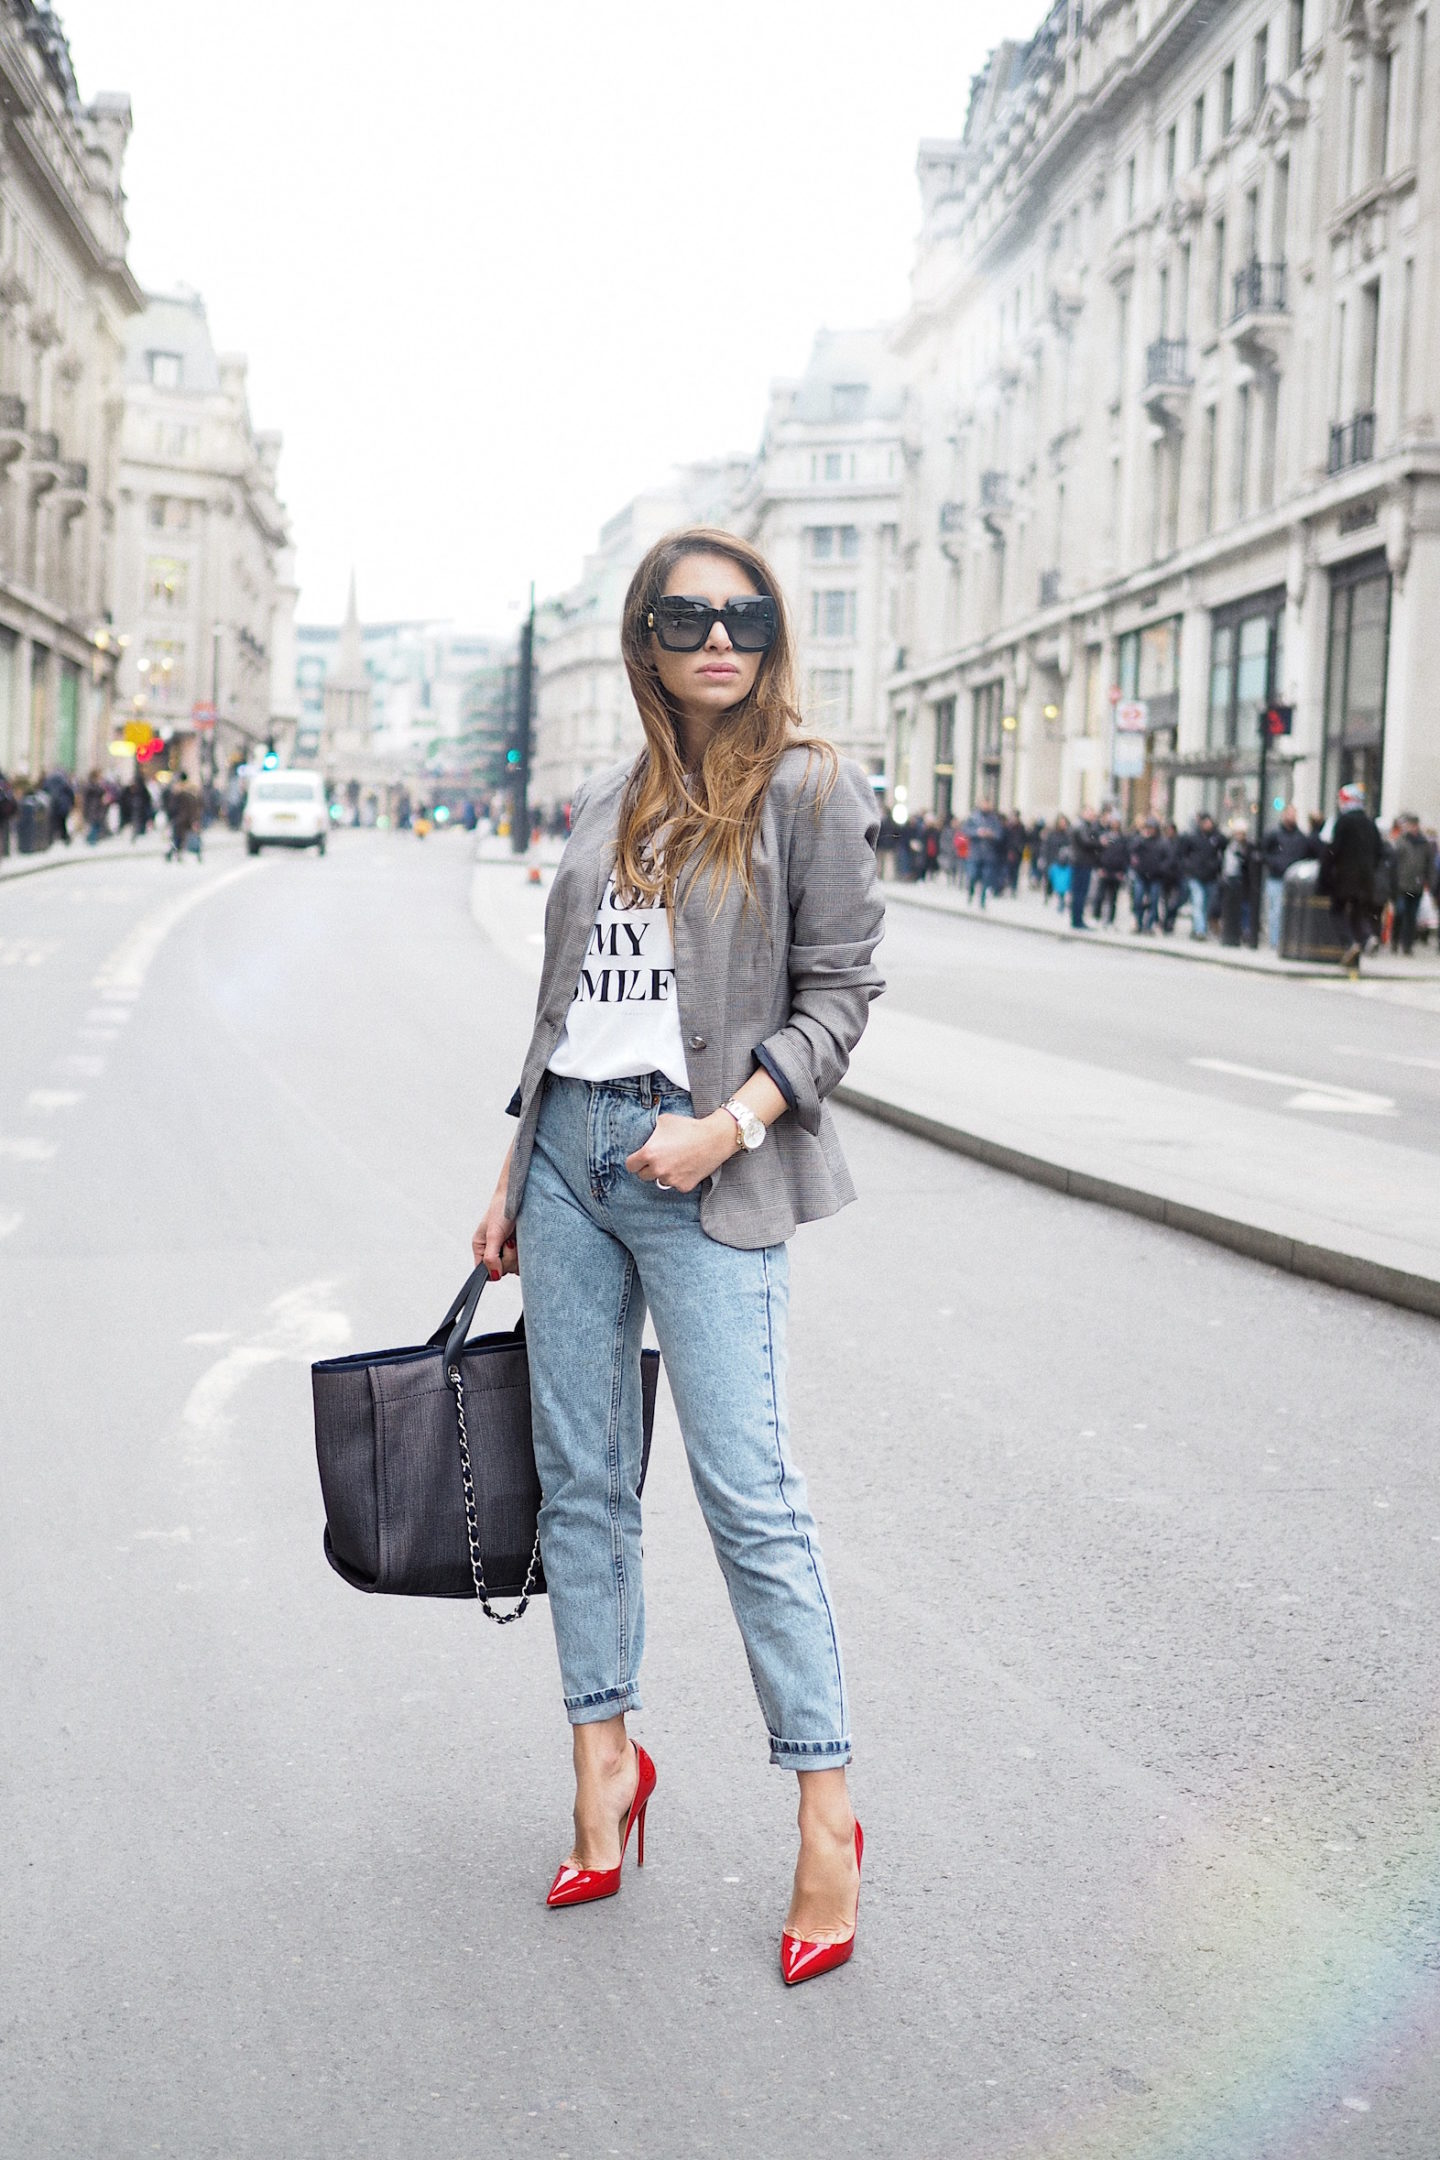 fashion stole my smile t-shirt victoria beckham london street style